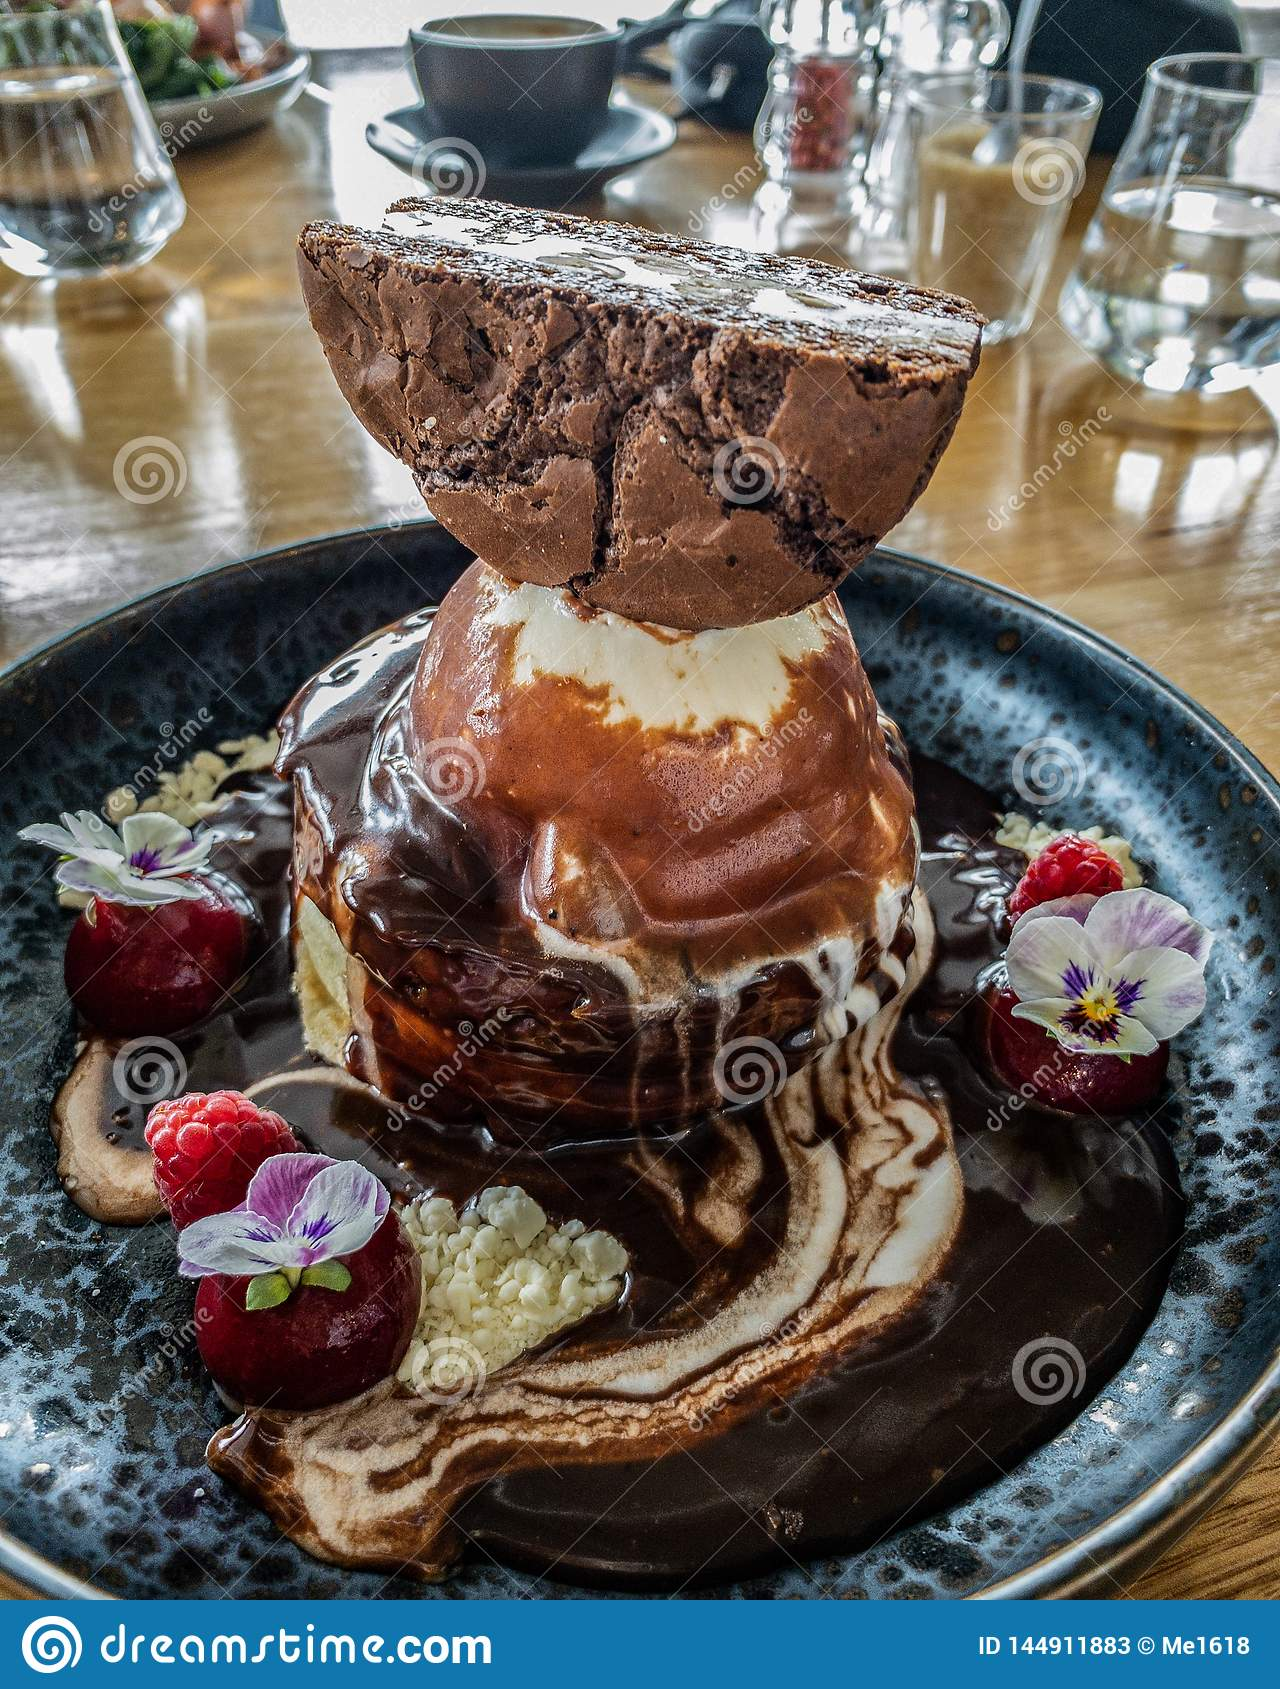 Epic pancake stack with ice-cream!